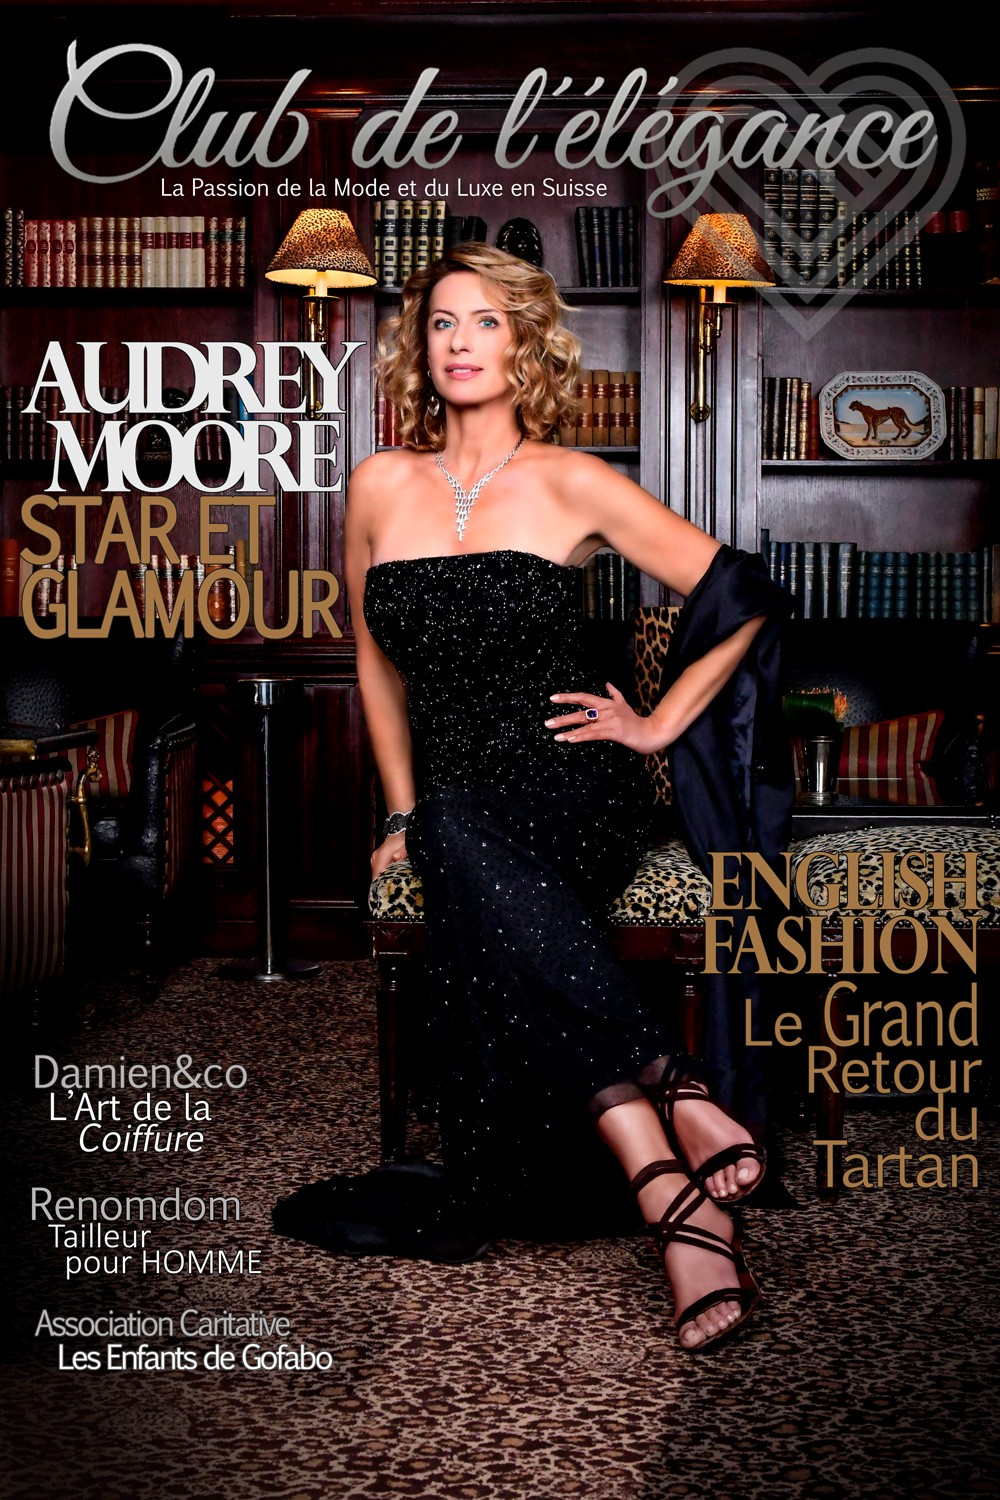 Audrey Moore, Star et Glamour